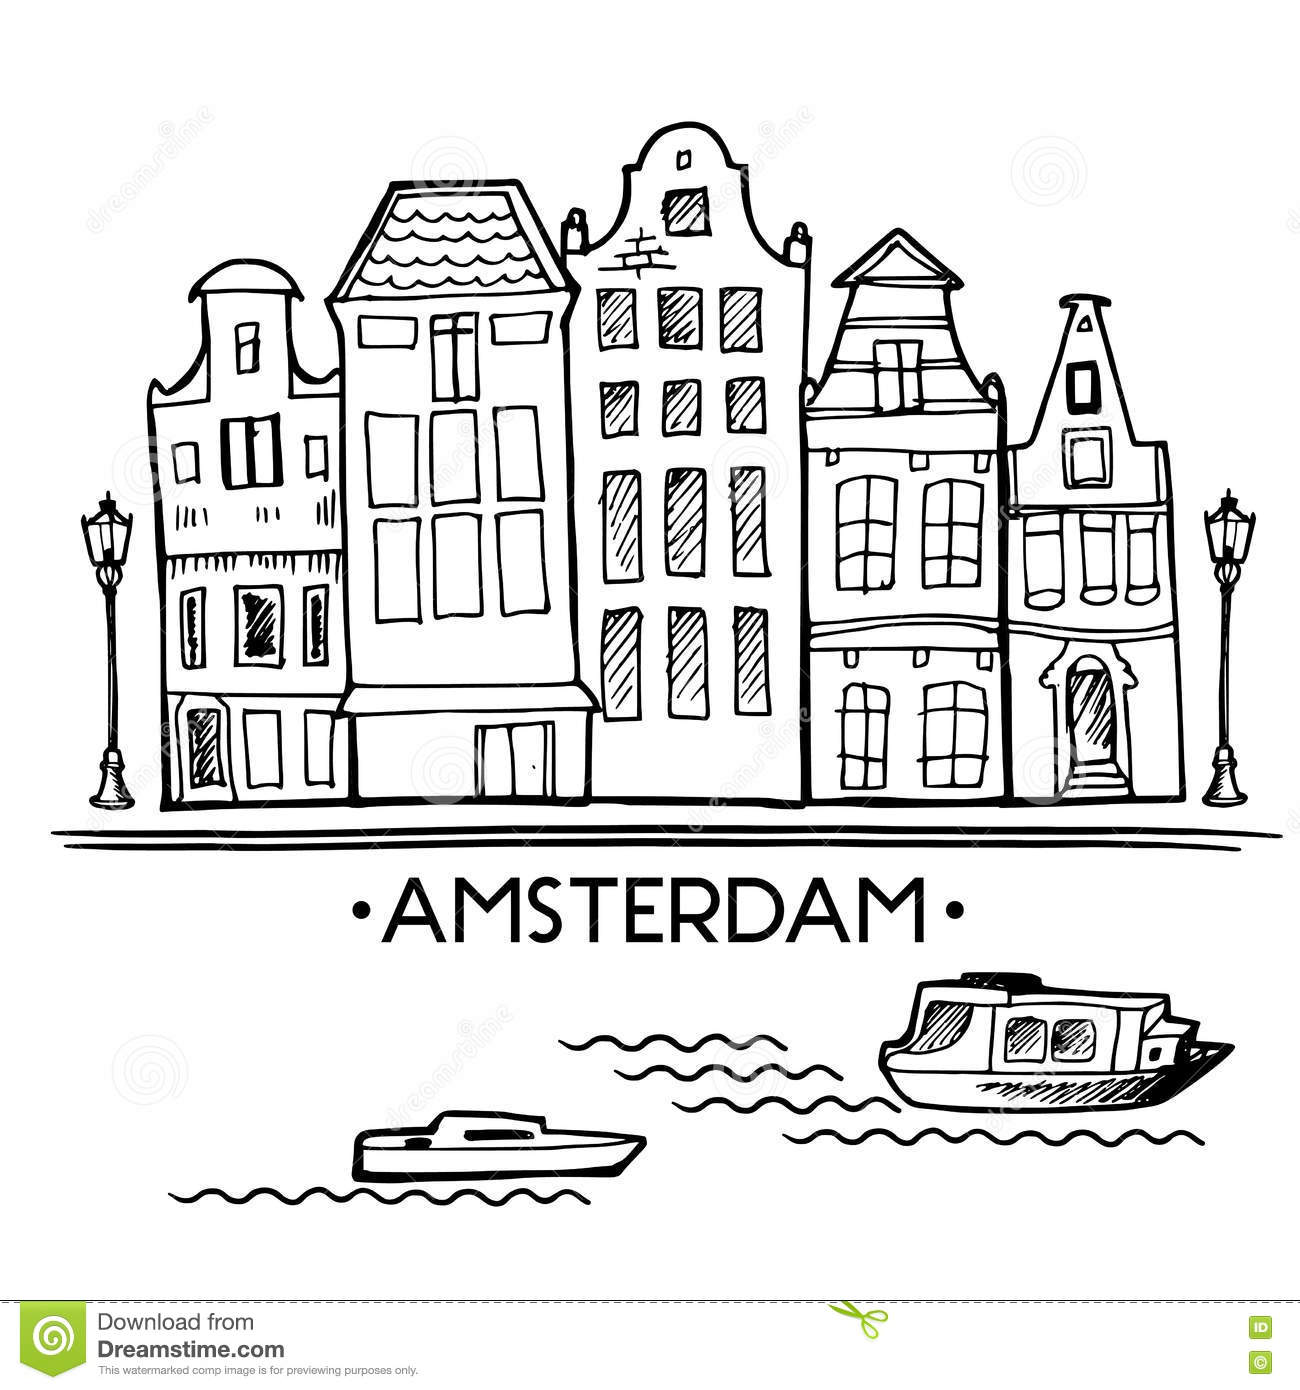 Background with hand drawn doodle Amsterdam houses. Isolated black and